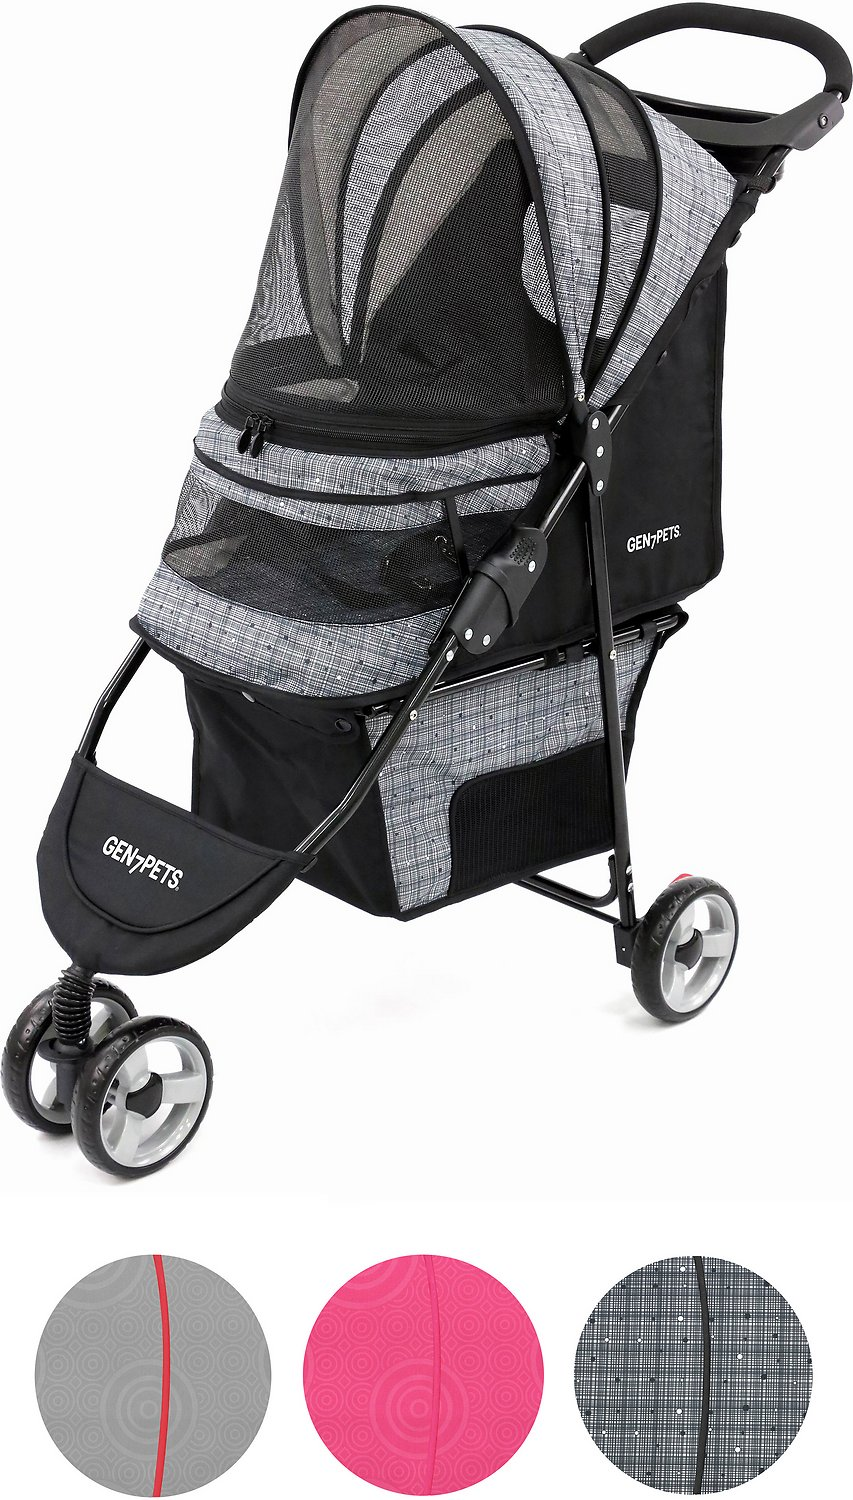 Gen7Pets Regal Plus Pet Stroller, Starry Night (Weights: 15.0pounds, Color: Starry Night) Image